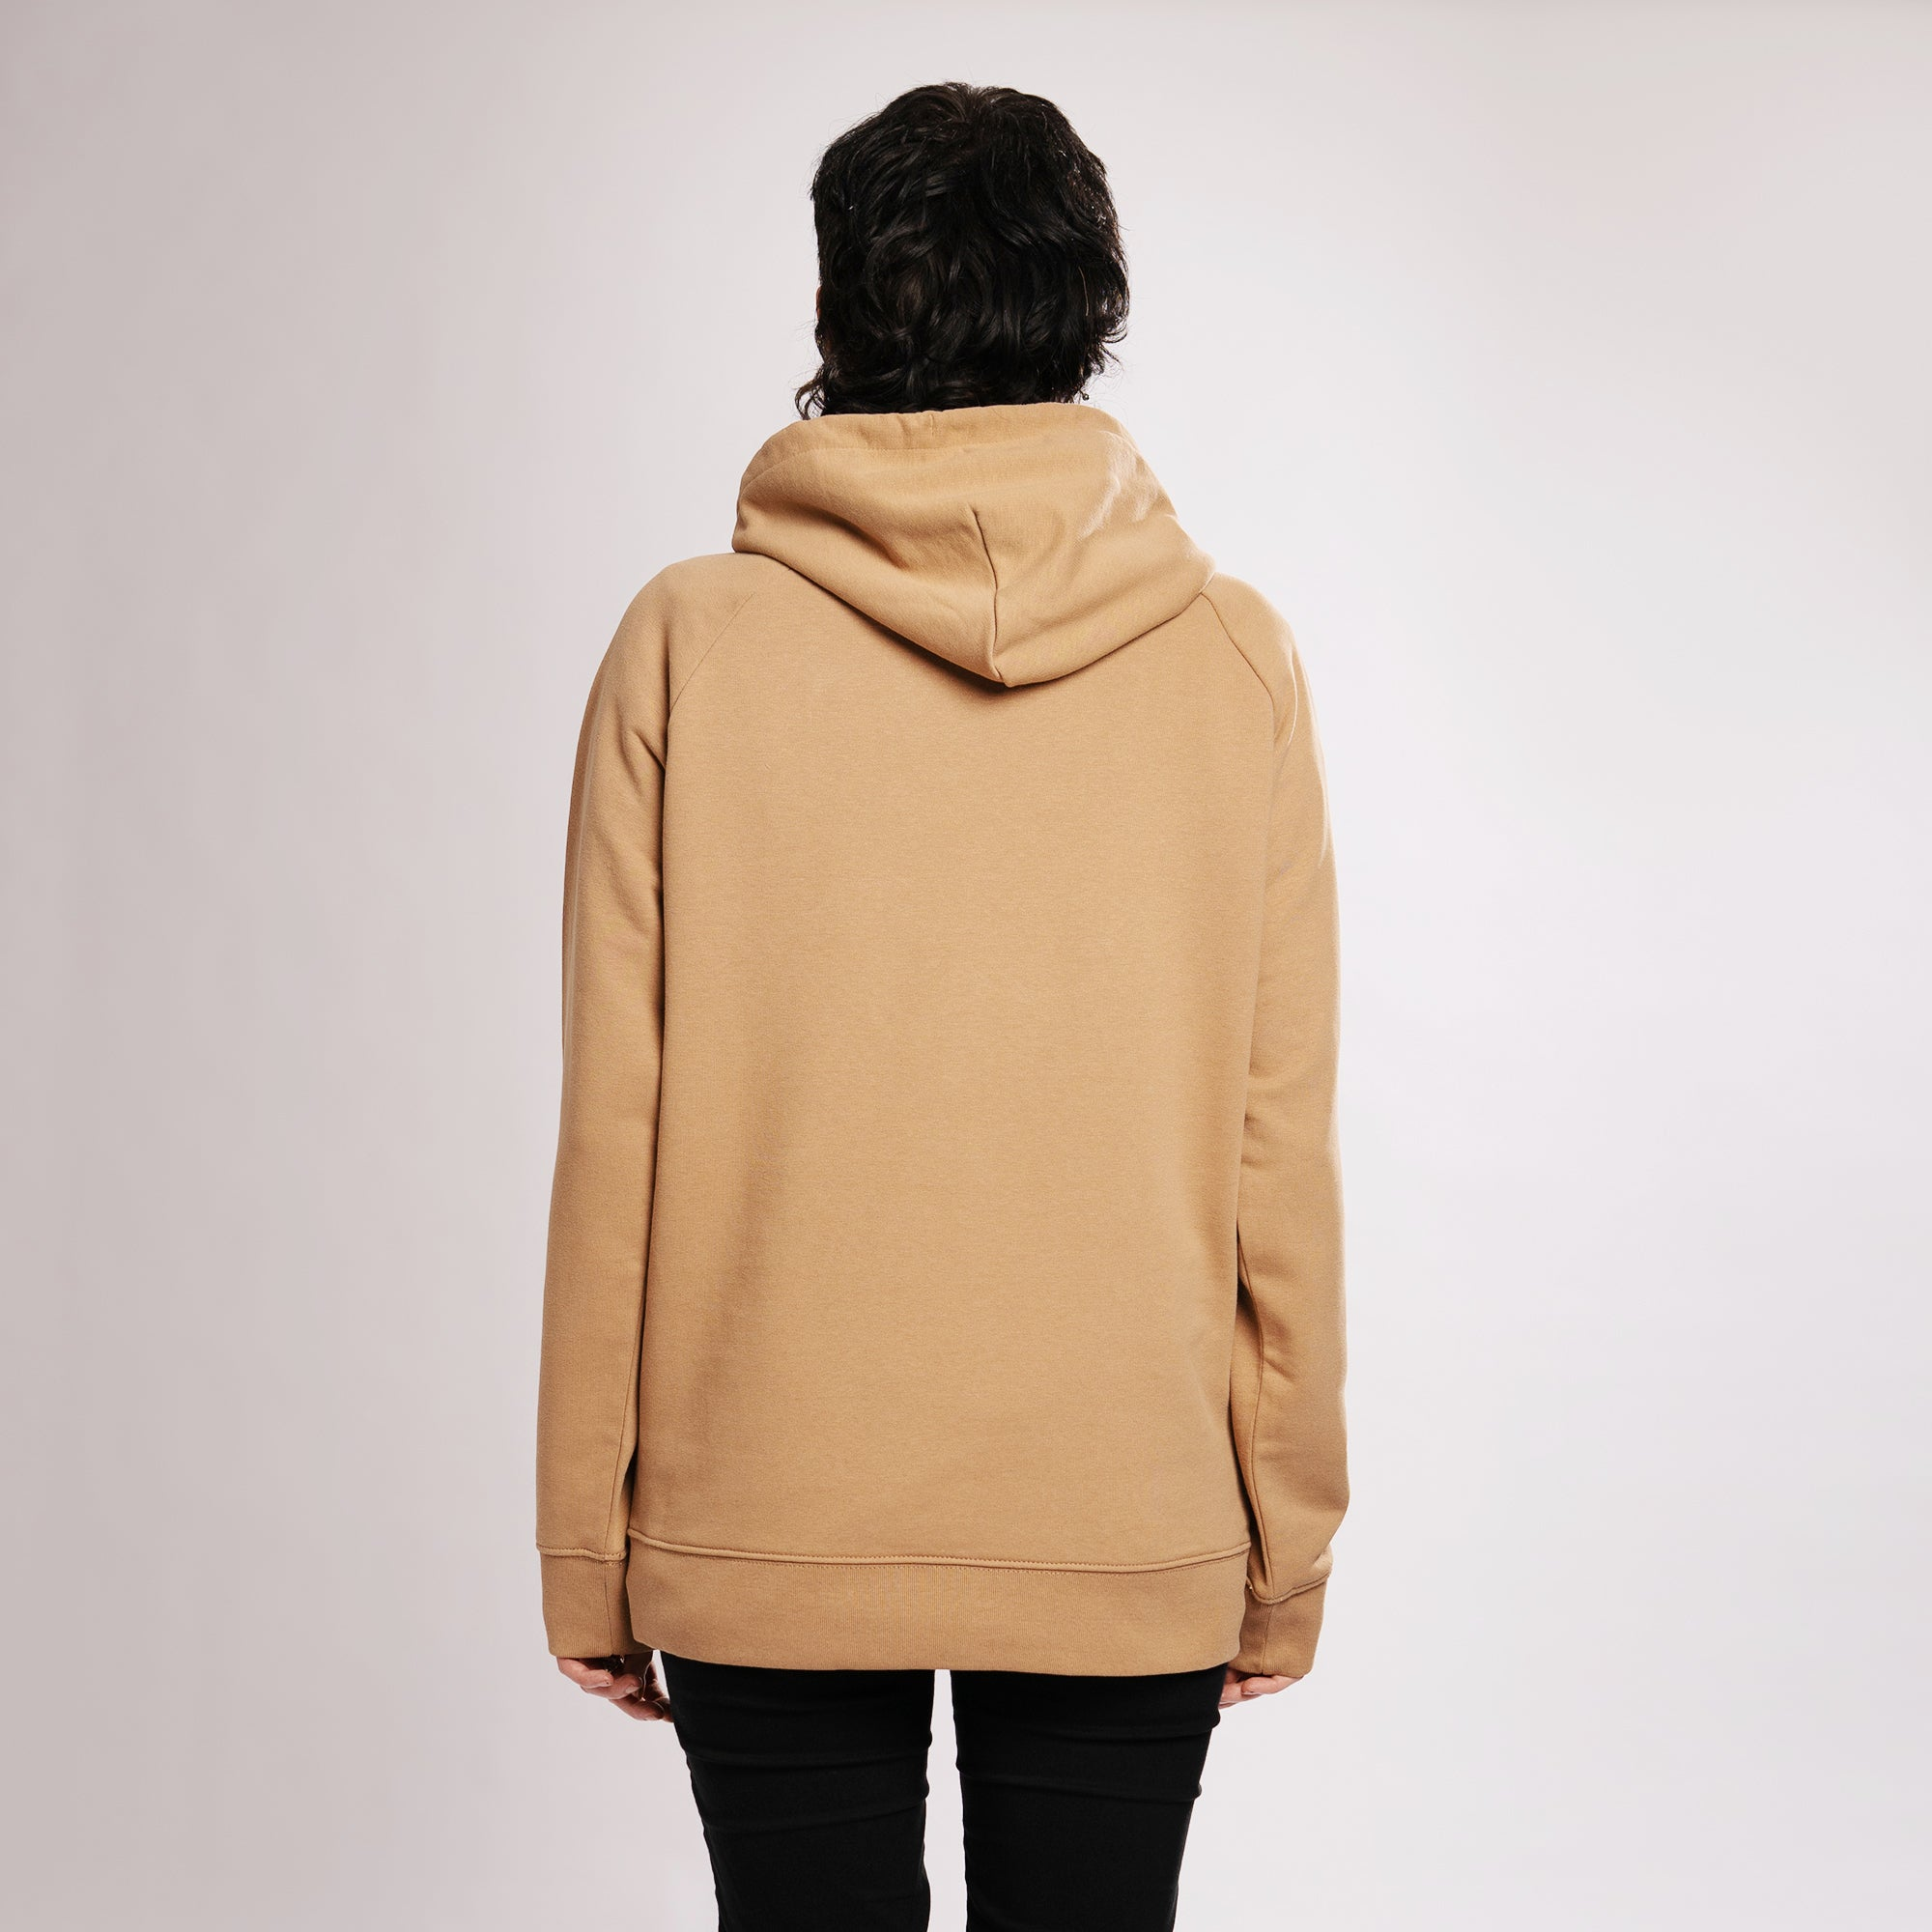 REFLECTION LOGO HOODIE - CAMEL